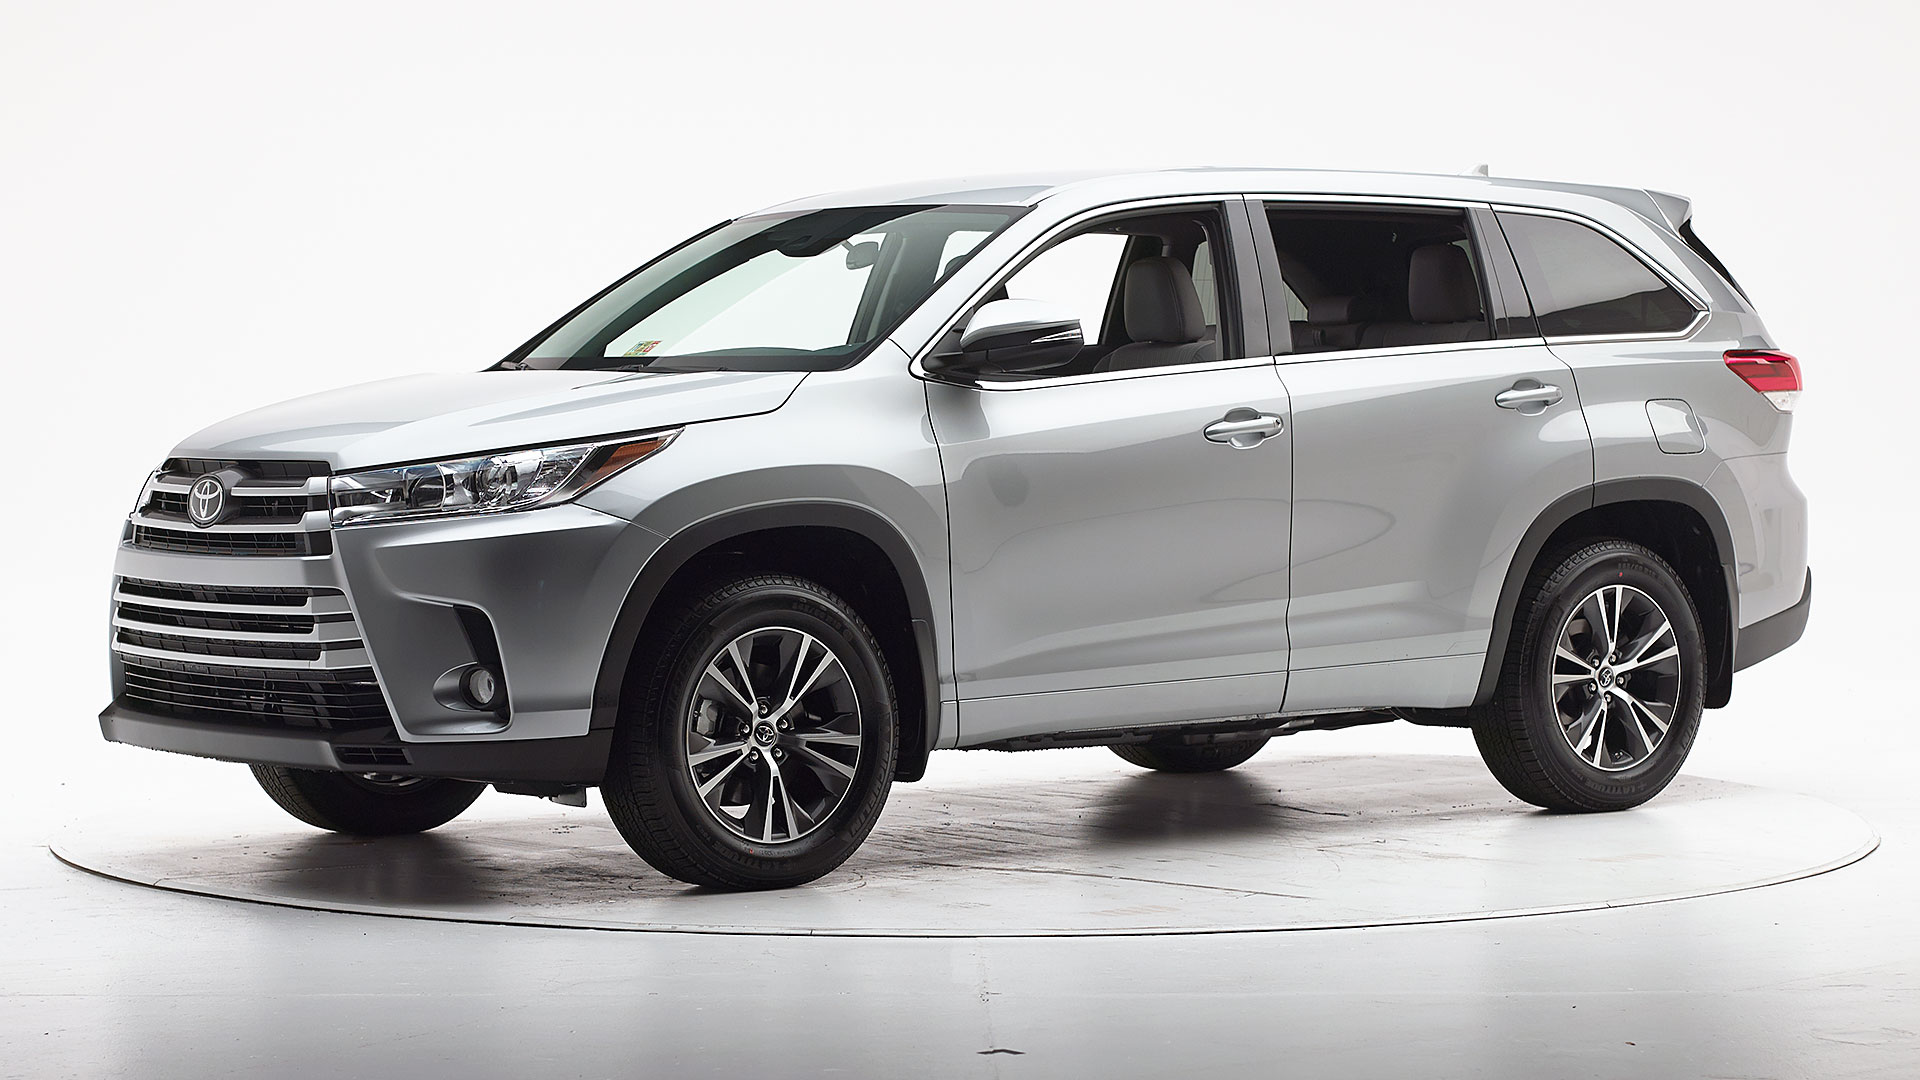 2017 Toyota Highlander 4-door SUV